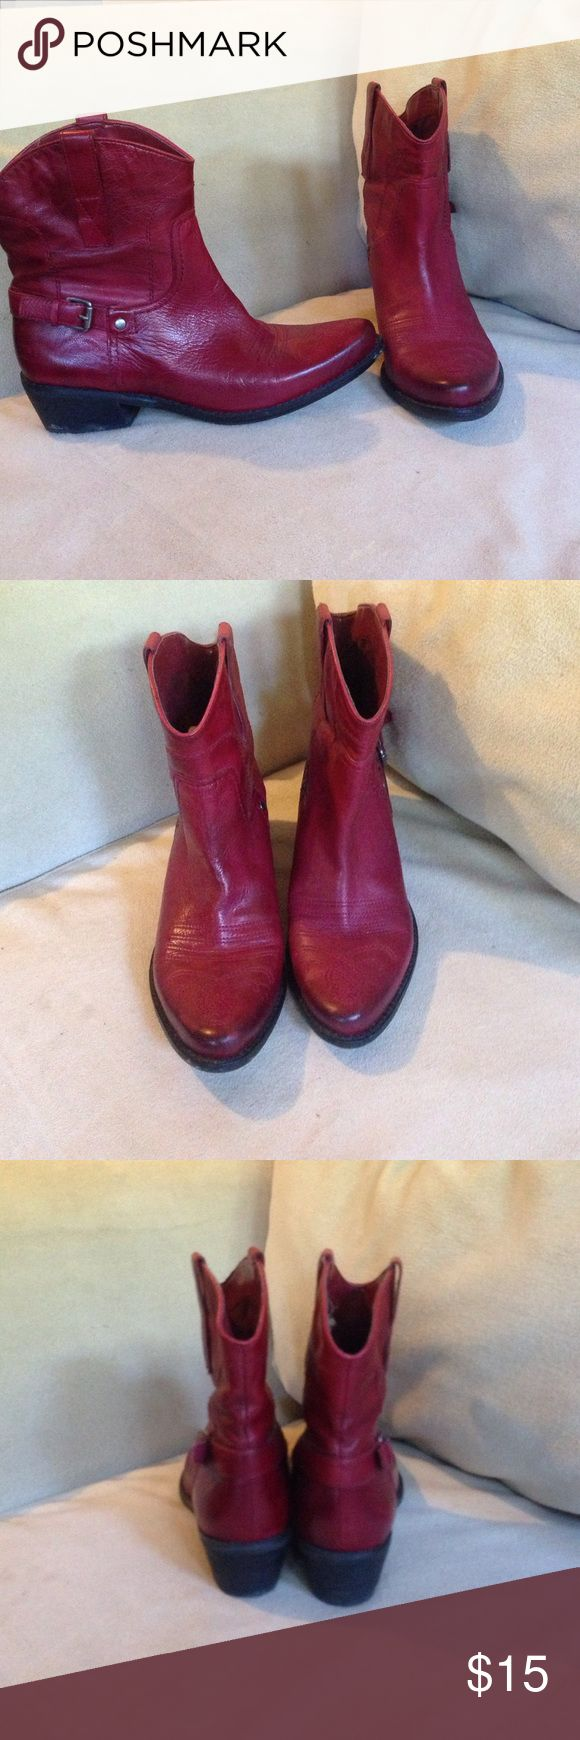 Red ankle cowboy boots Franco Sarto red ankle cowboy boot in great condition 8.5 Franco Sarto Shoes Ankle Boots & Booties